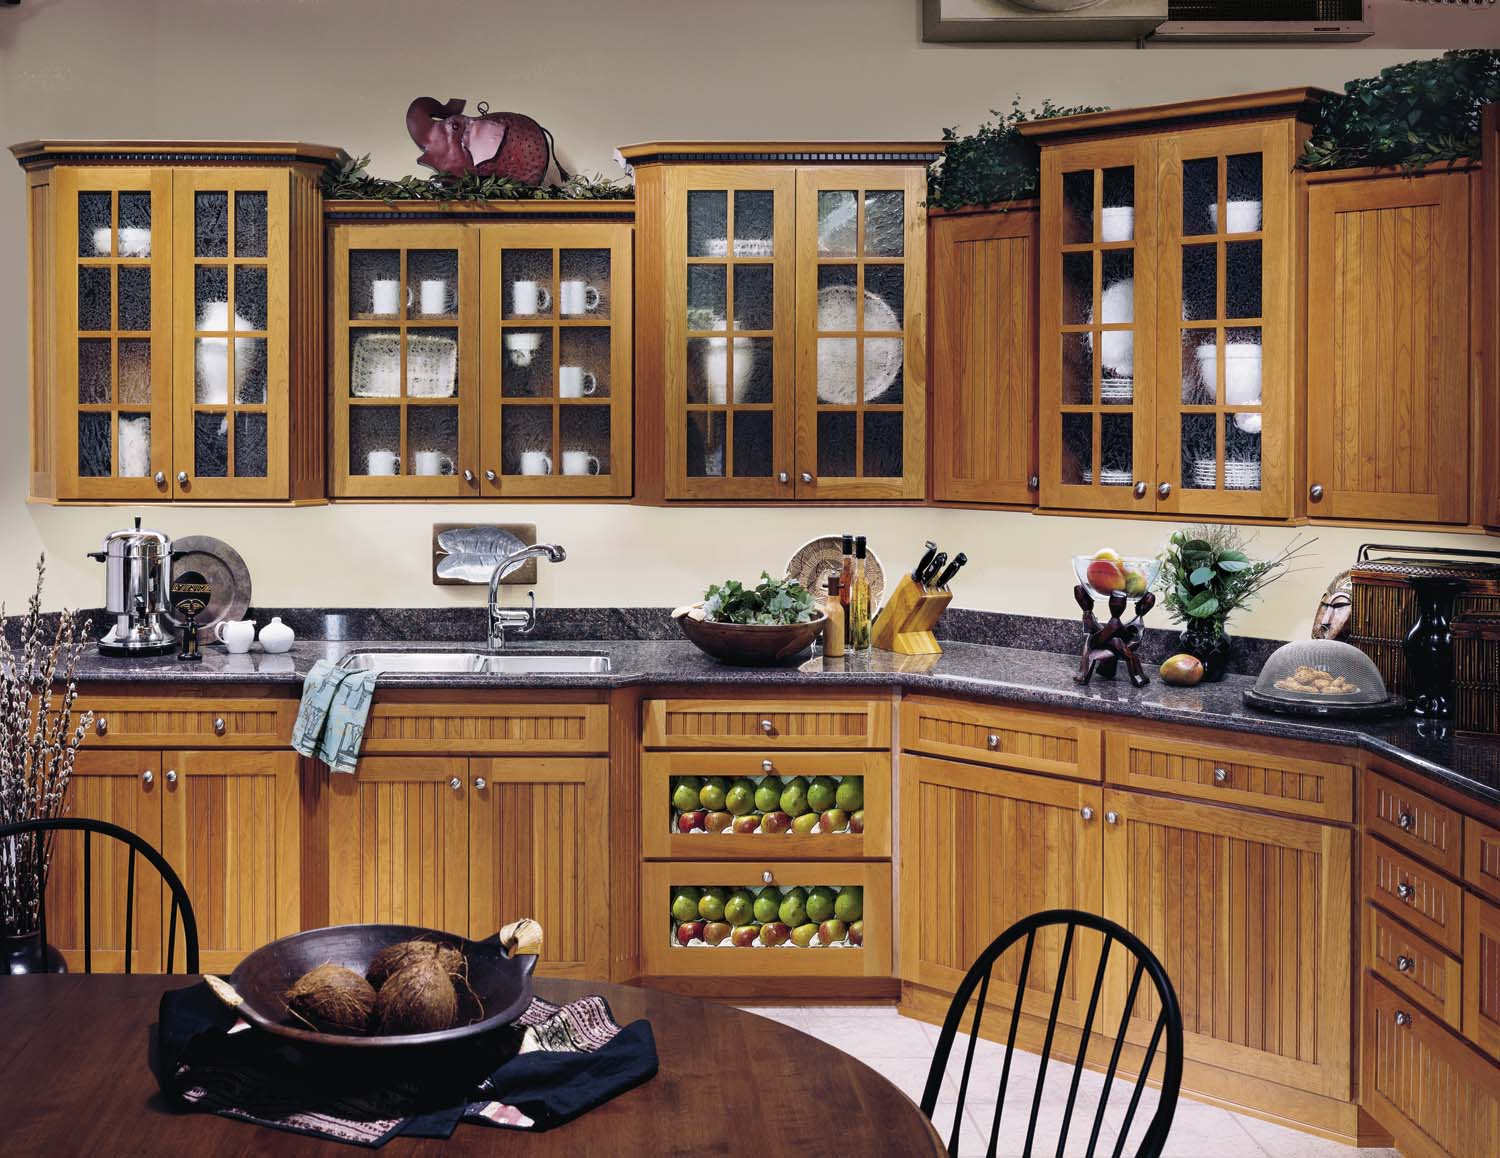 kitchen cabinets styles ranges gas 1000 43 options in how to choose best for